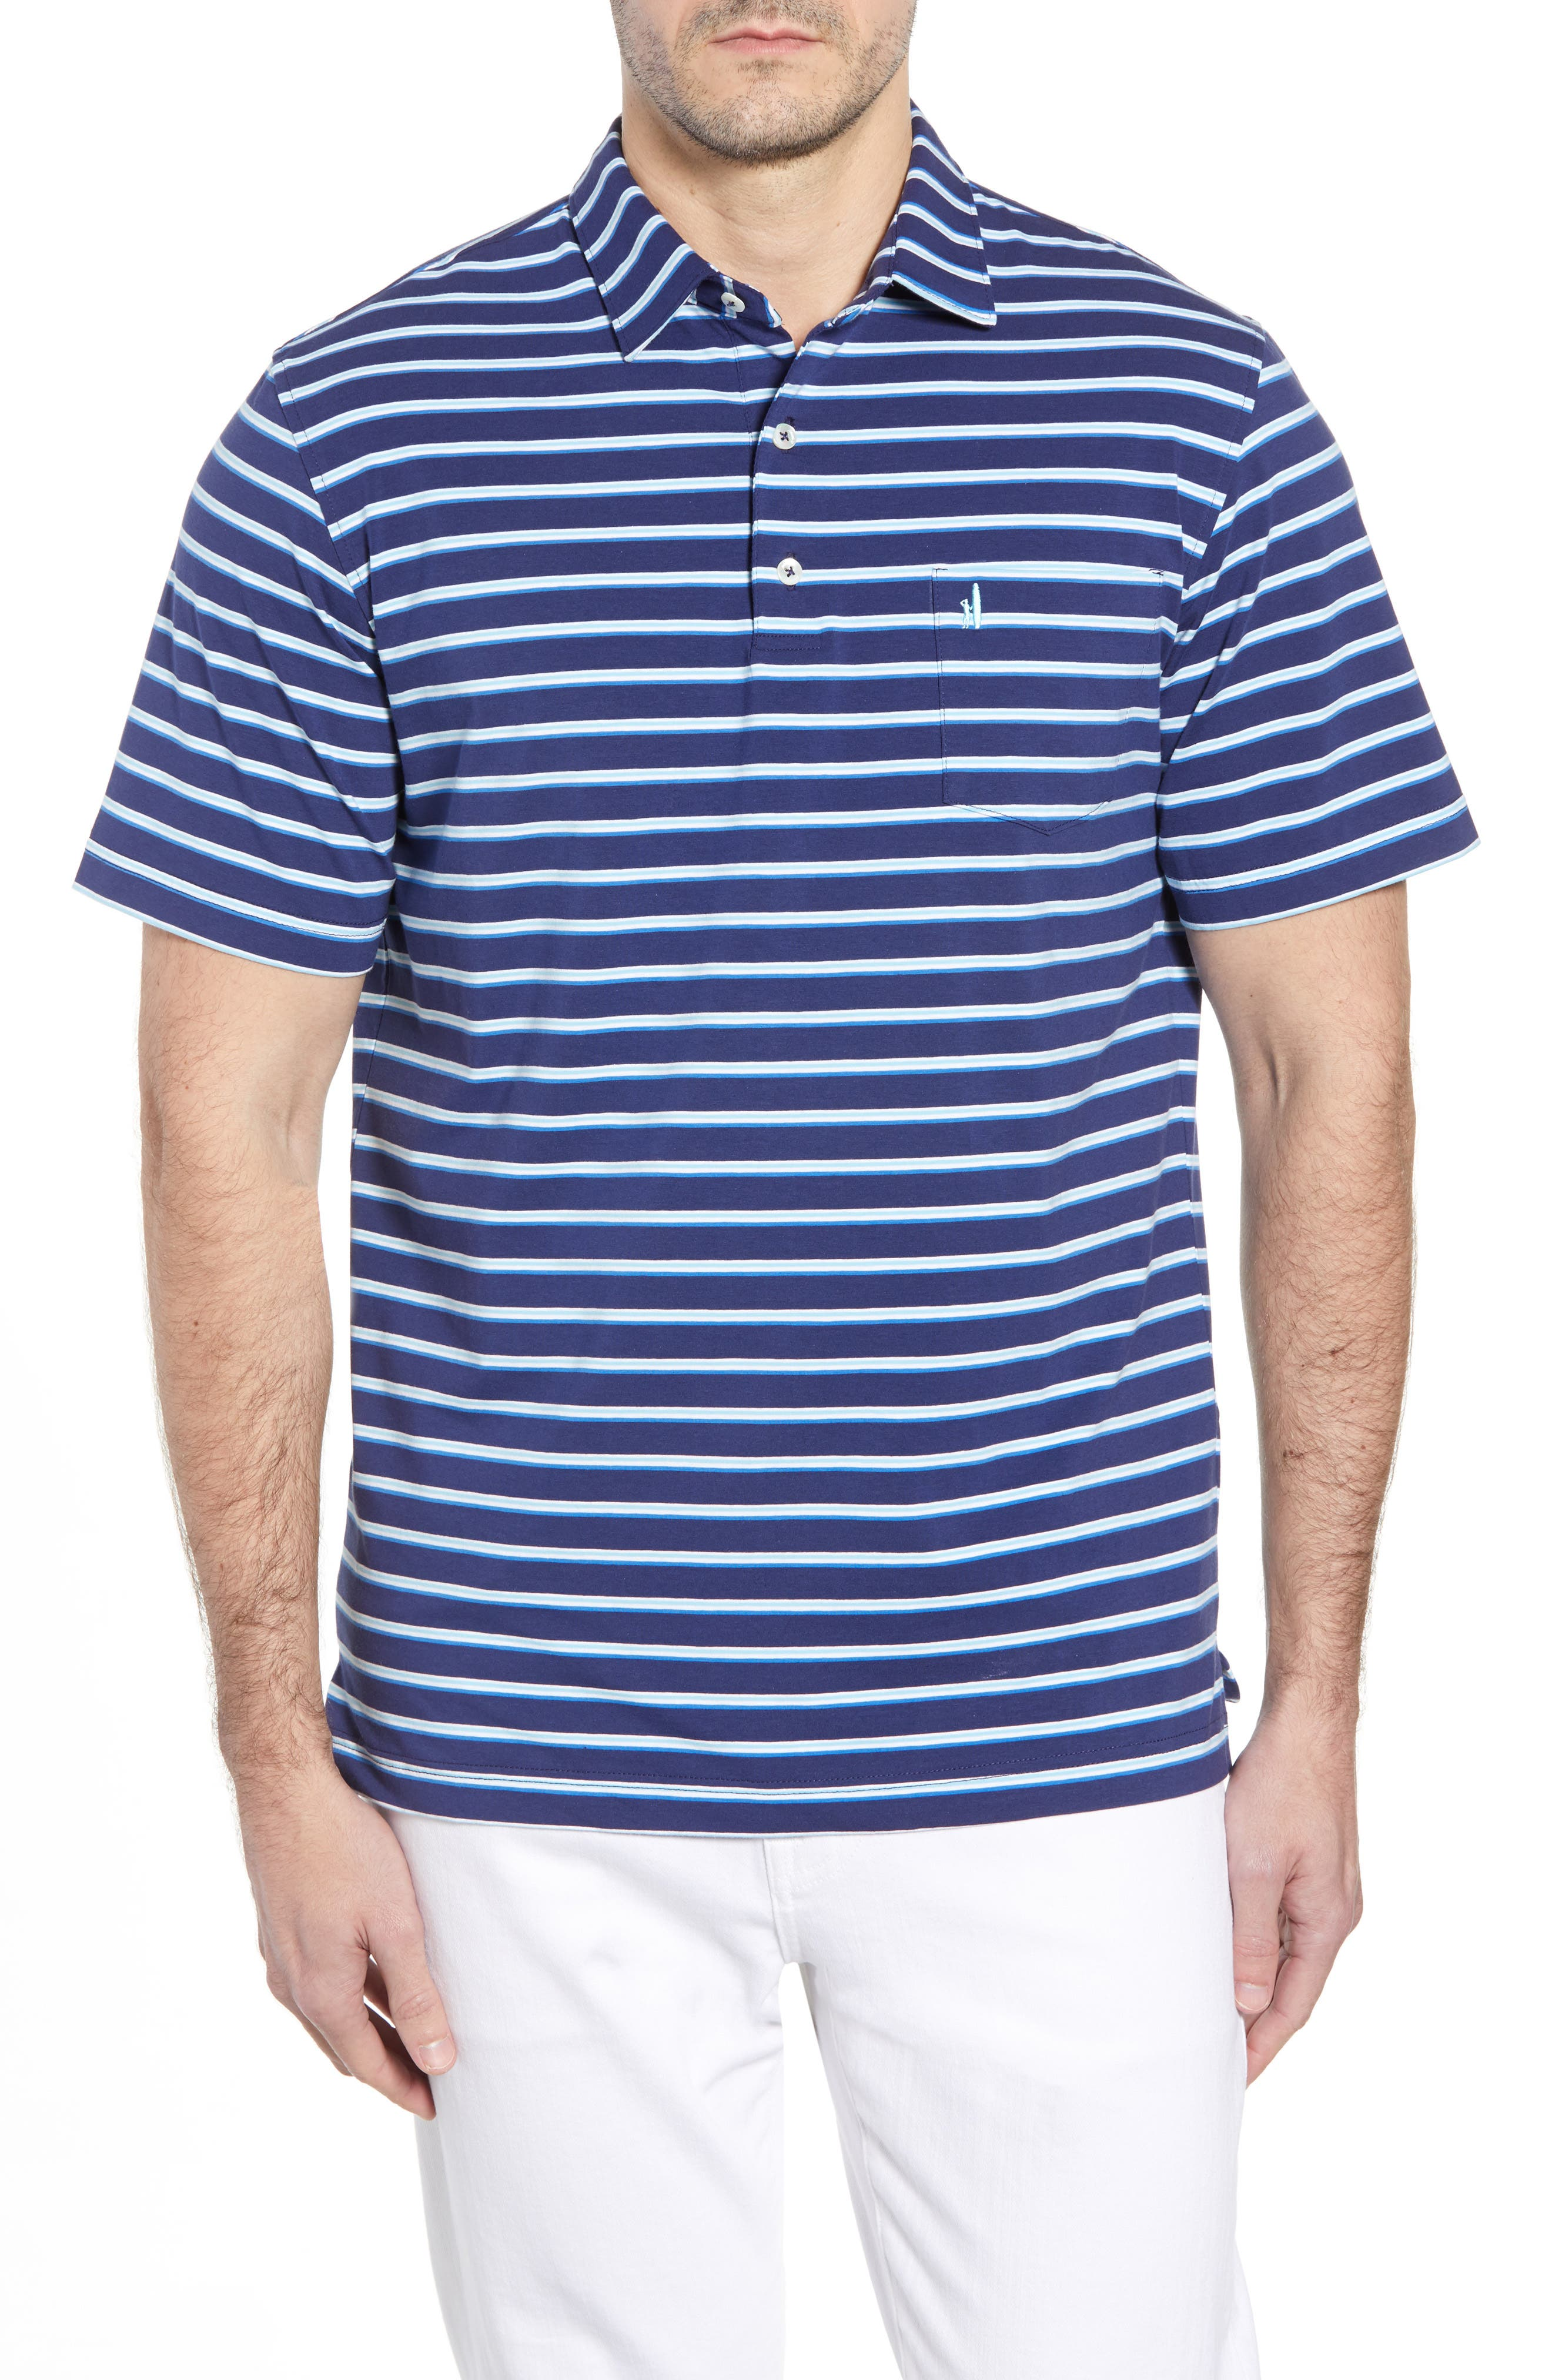 Battle Classic Fit Stripe Stretch Jersey Polo,                         Main,                         color, Twilight